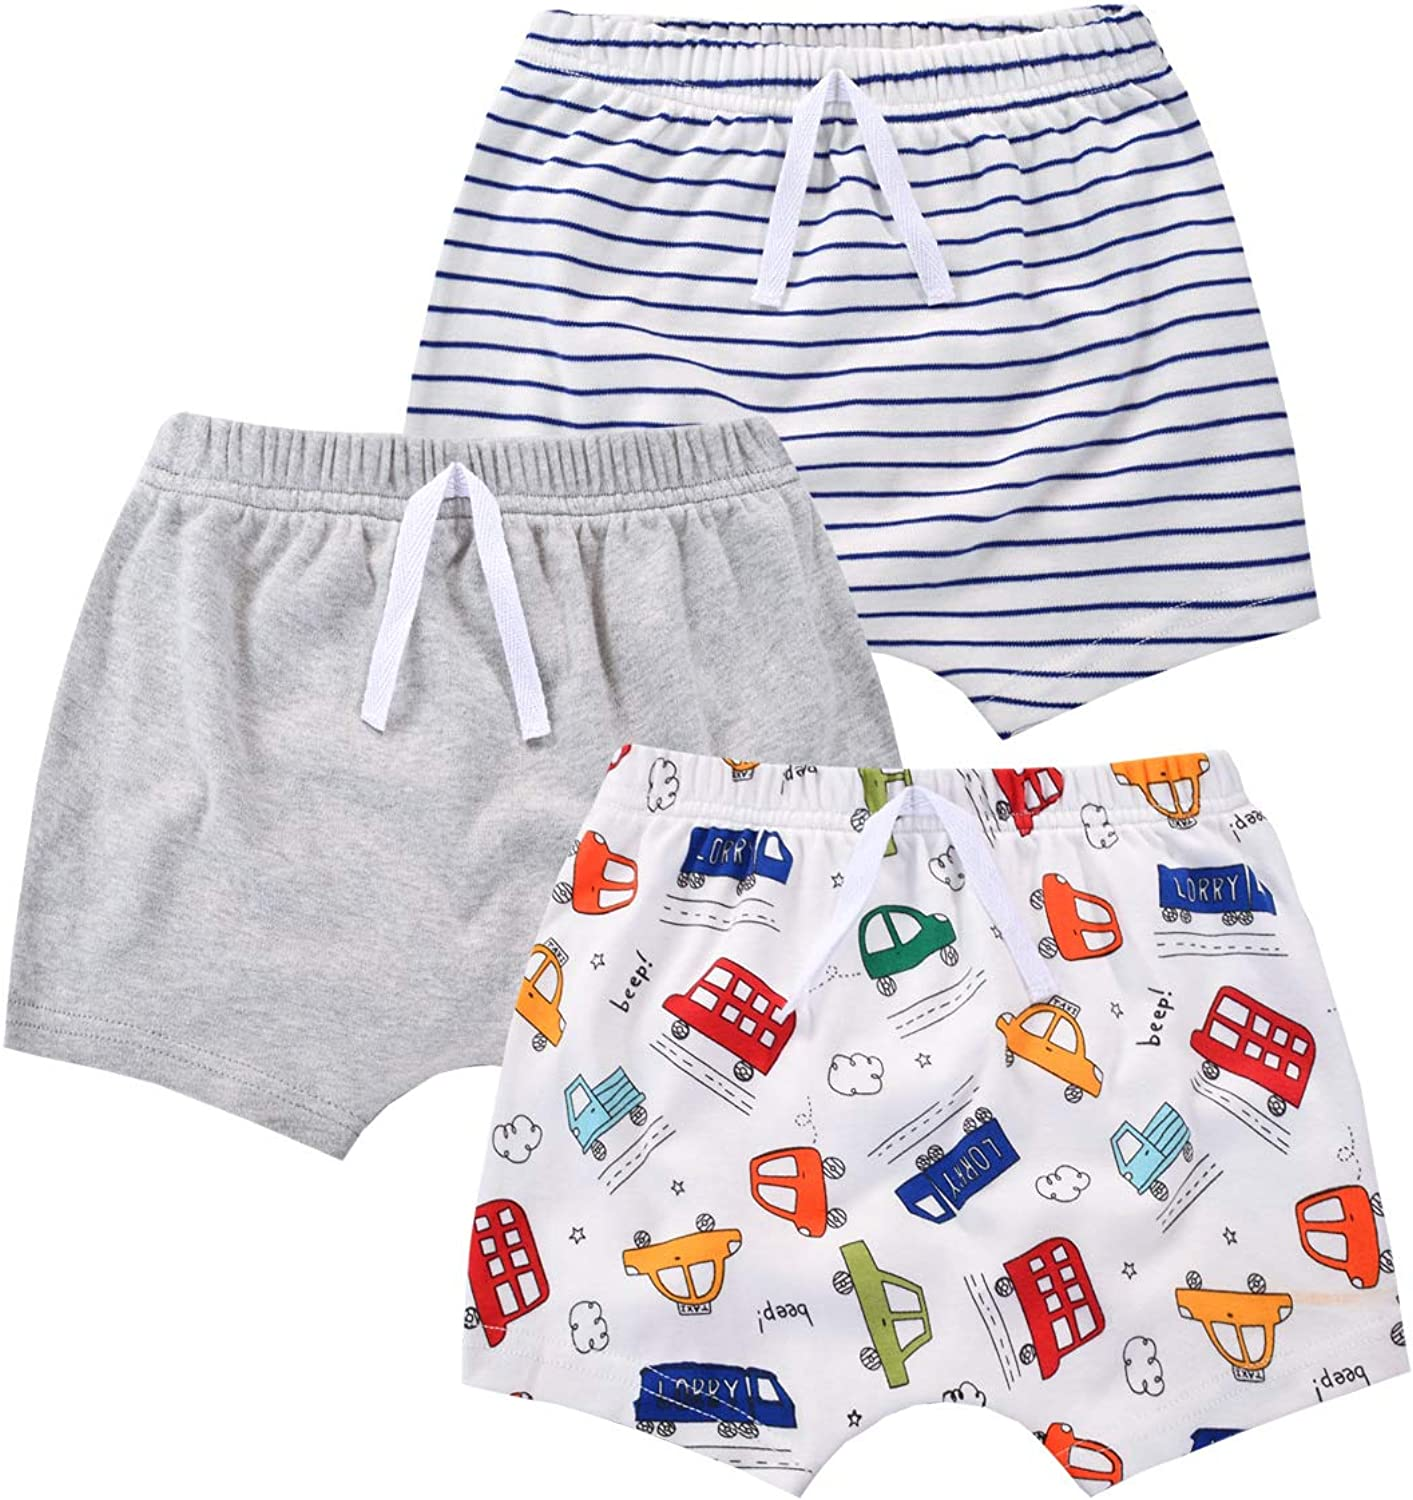 2021 spring and summer new mini eggs 3 Pack Cotton Shorts Unisex Boys Girls Short for Ranking TOP8 Baby